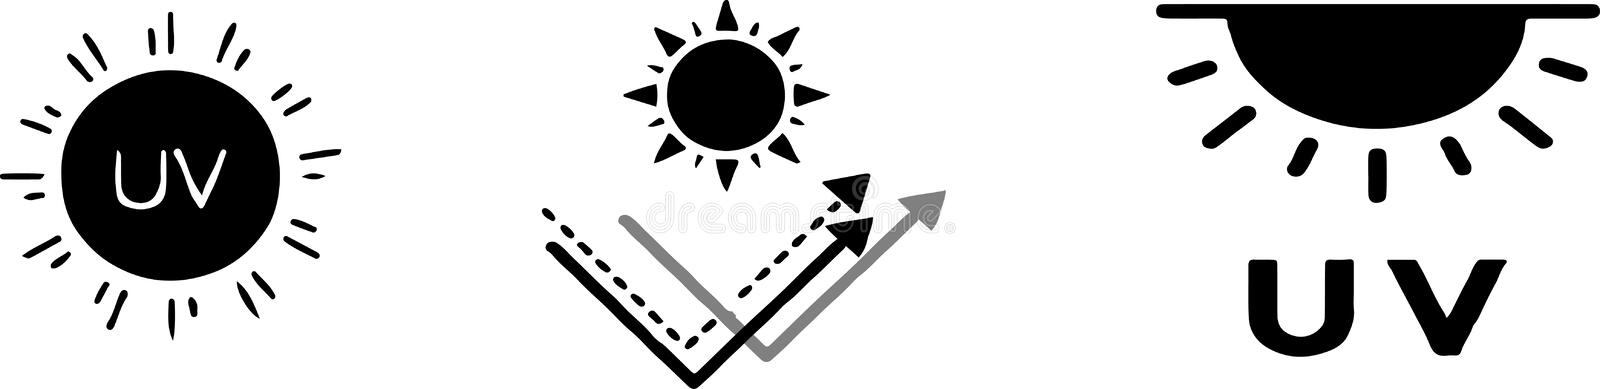 UV Radiation Icon Over White Royalty Free Cliparts, Vectors, And Stock  Illustration. Image 73777536.